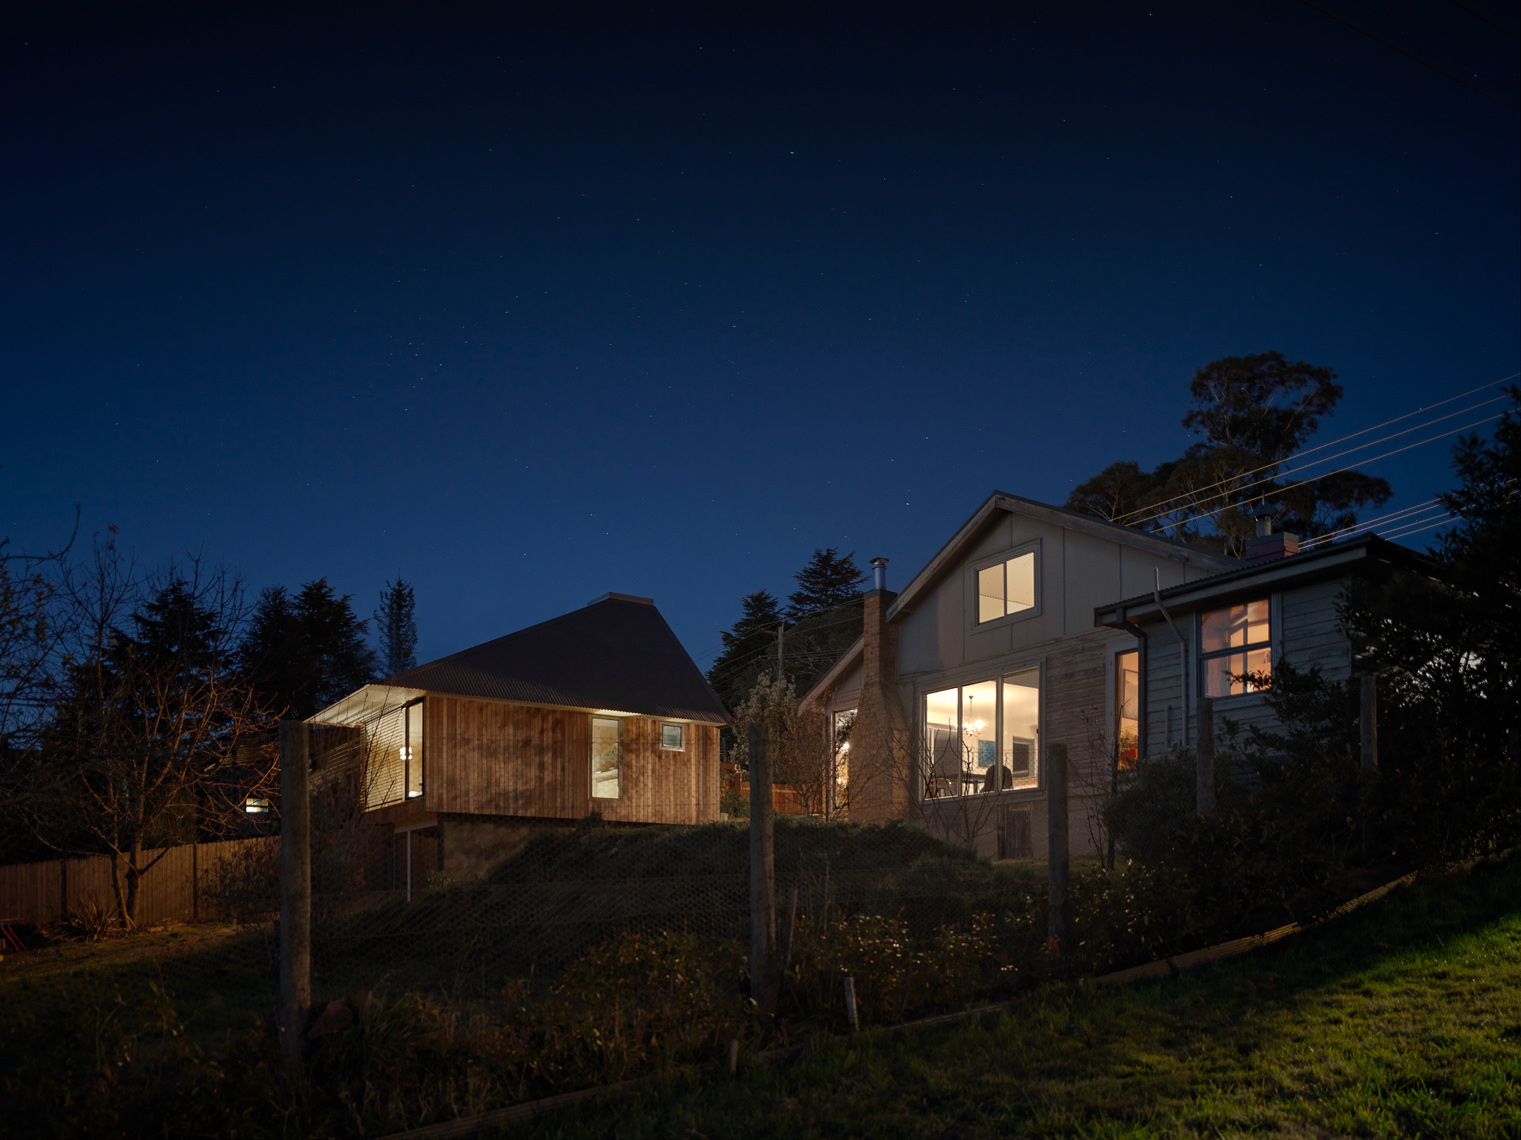 luke-butterly-bluemountains-clt-studio-by-design-king-company-architecture-photography-sydney-36